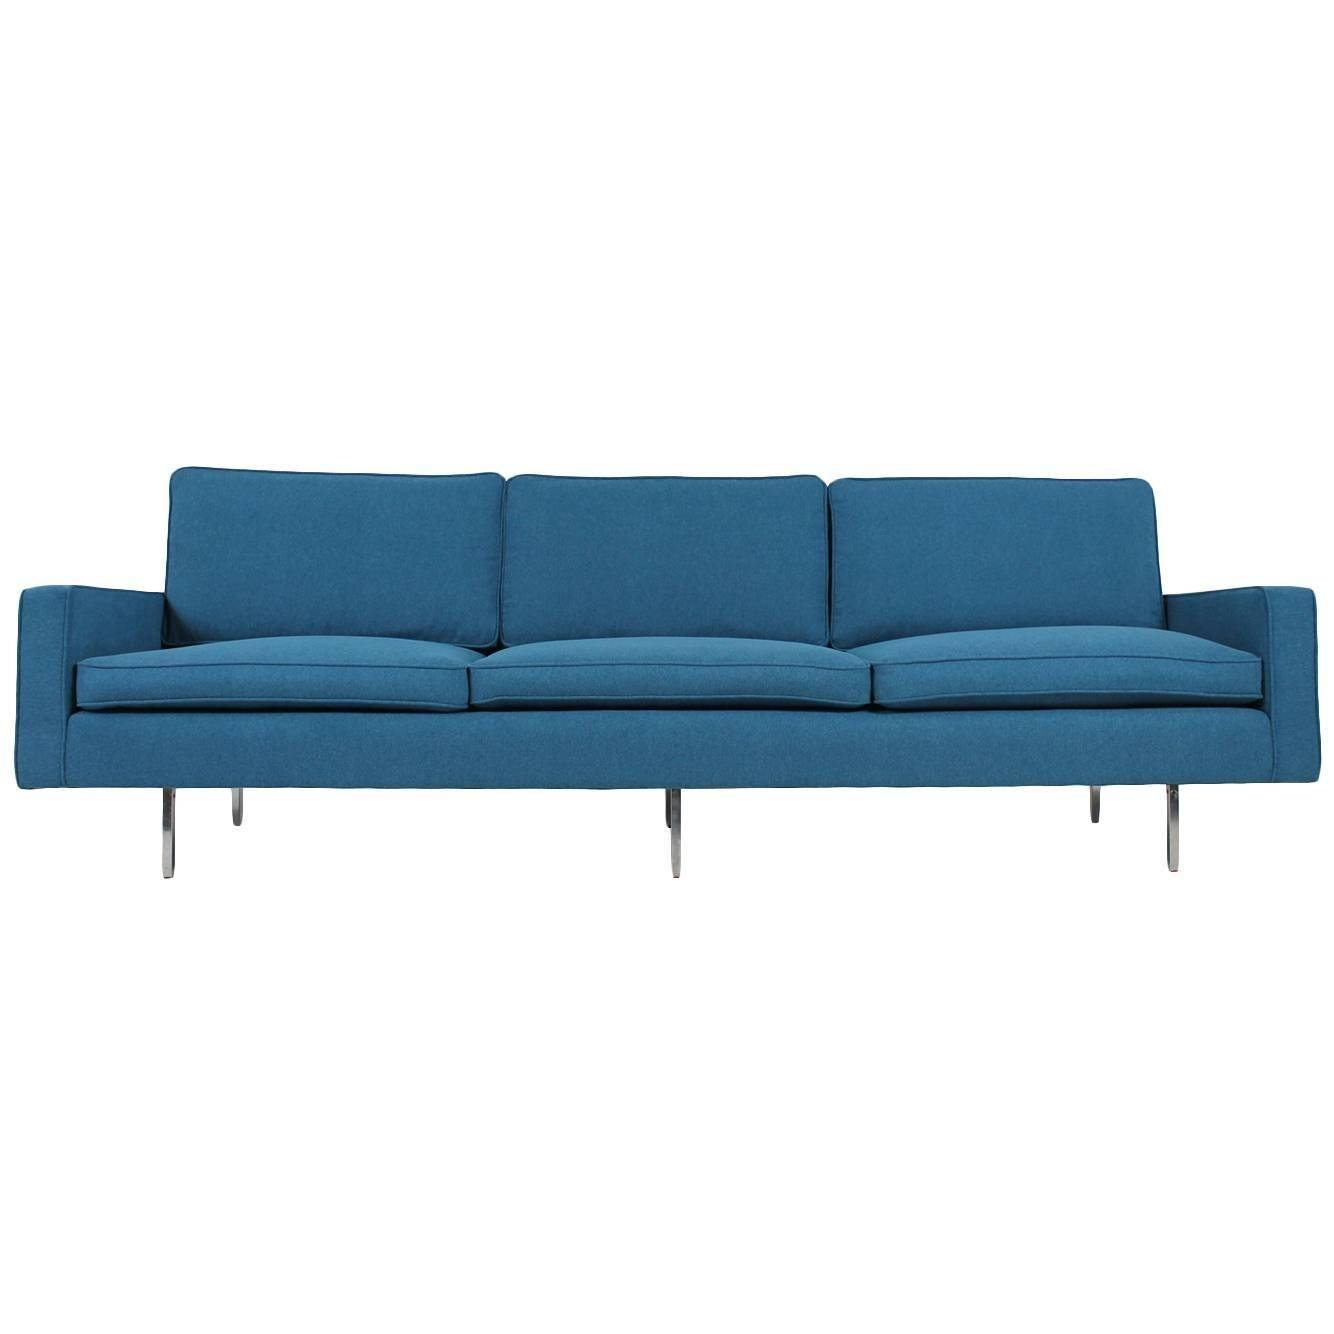 Beautiful Mid-Century Florence Knoll Sofa Mod. 25 Bc Knoll pertaining to Florence Knoll Style Sofas (Image 1 of 25)